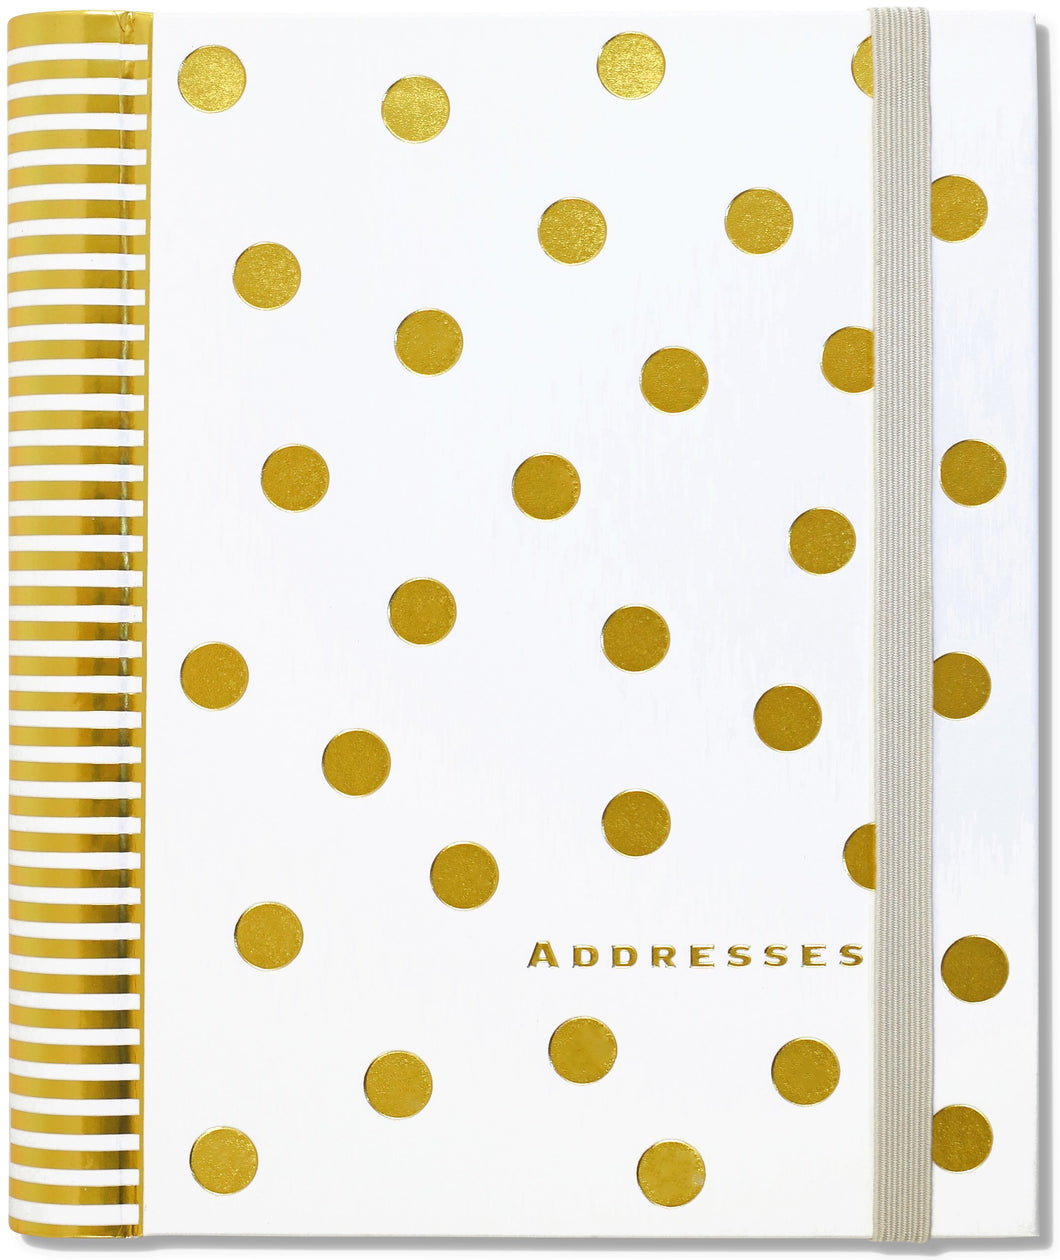 Peter Pauper Press Gold Dot Large Address Book